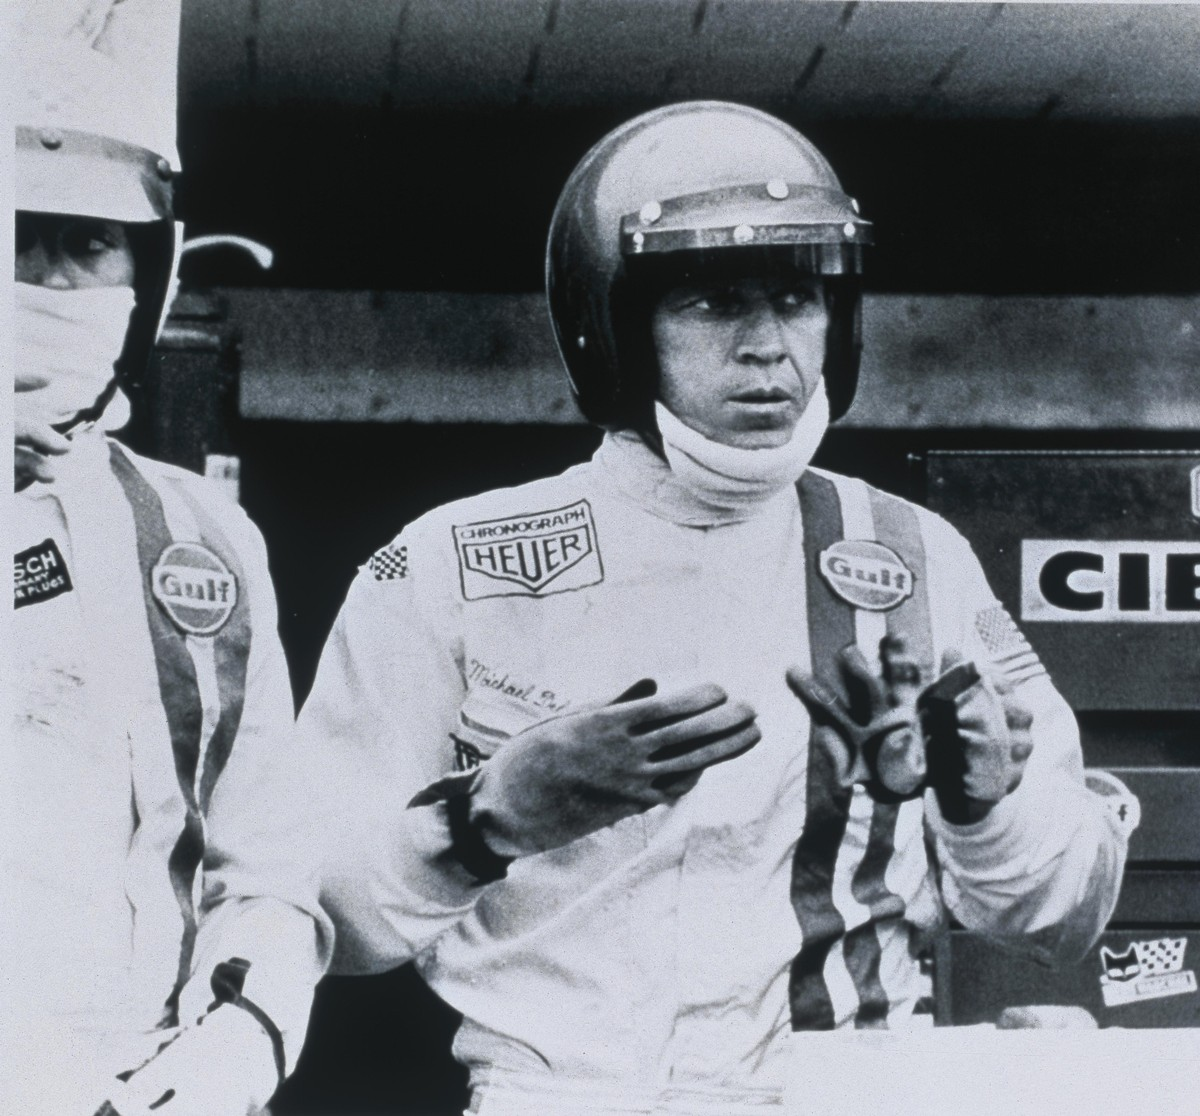 Le Mans 1971 Film with Steve McQueen